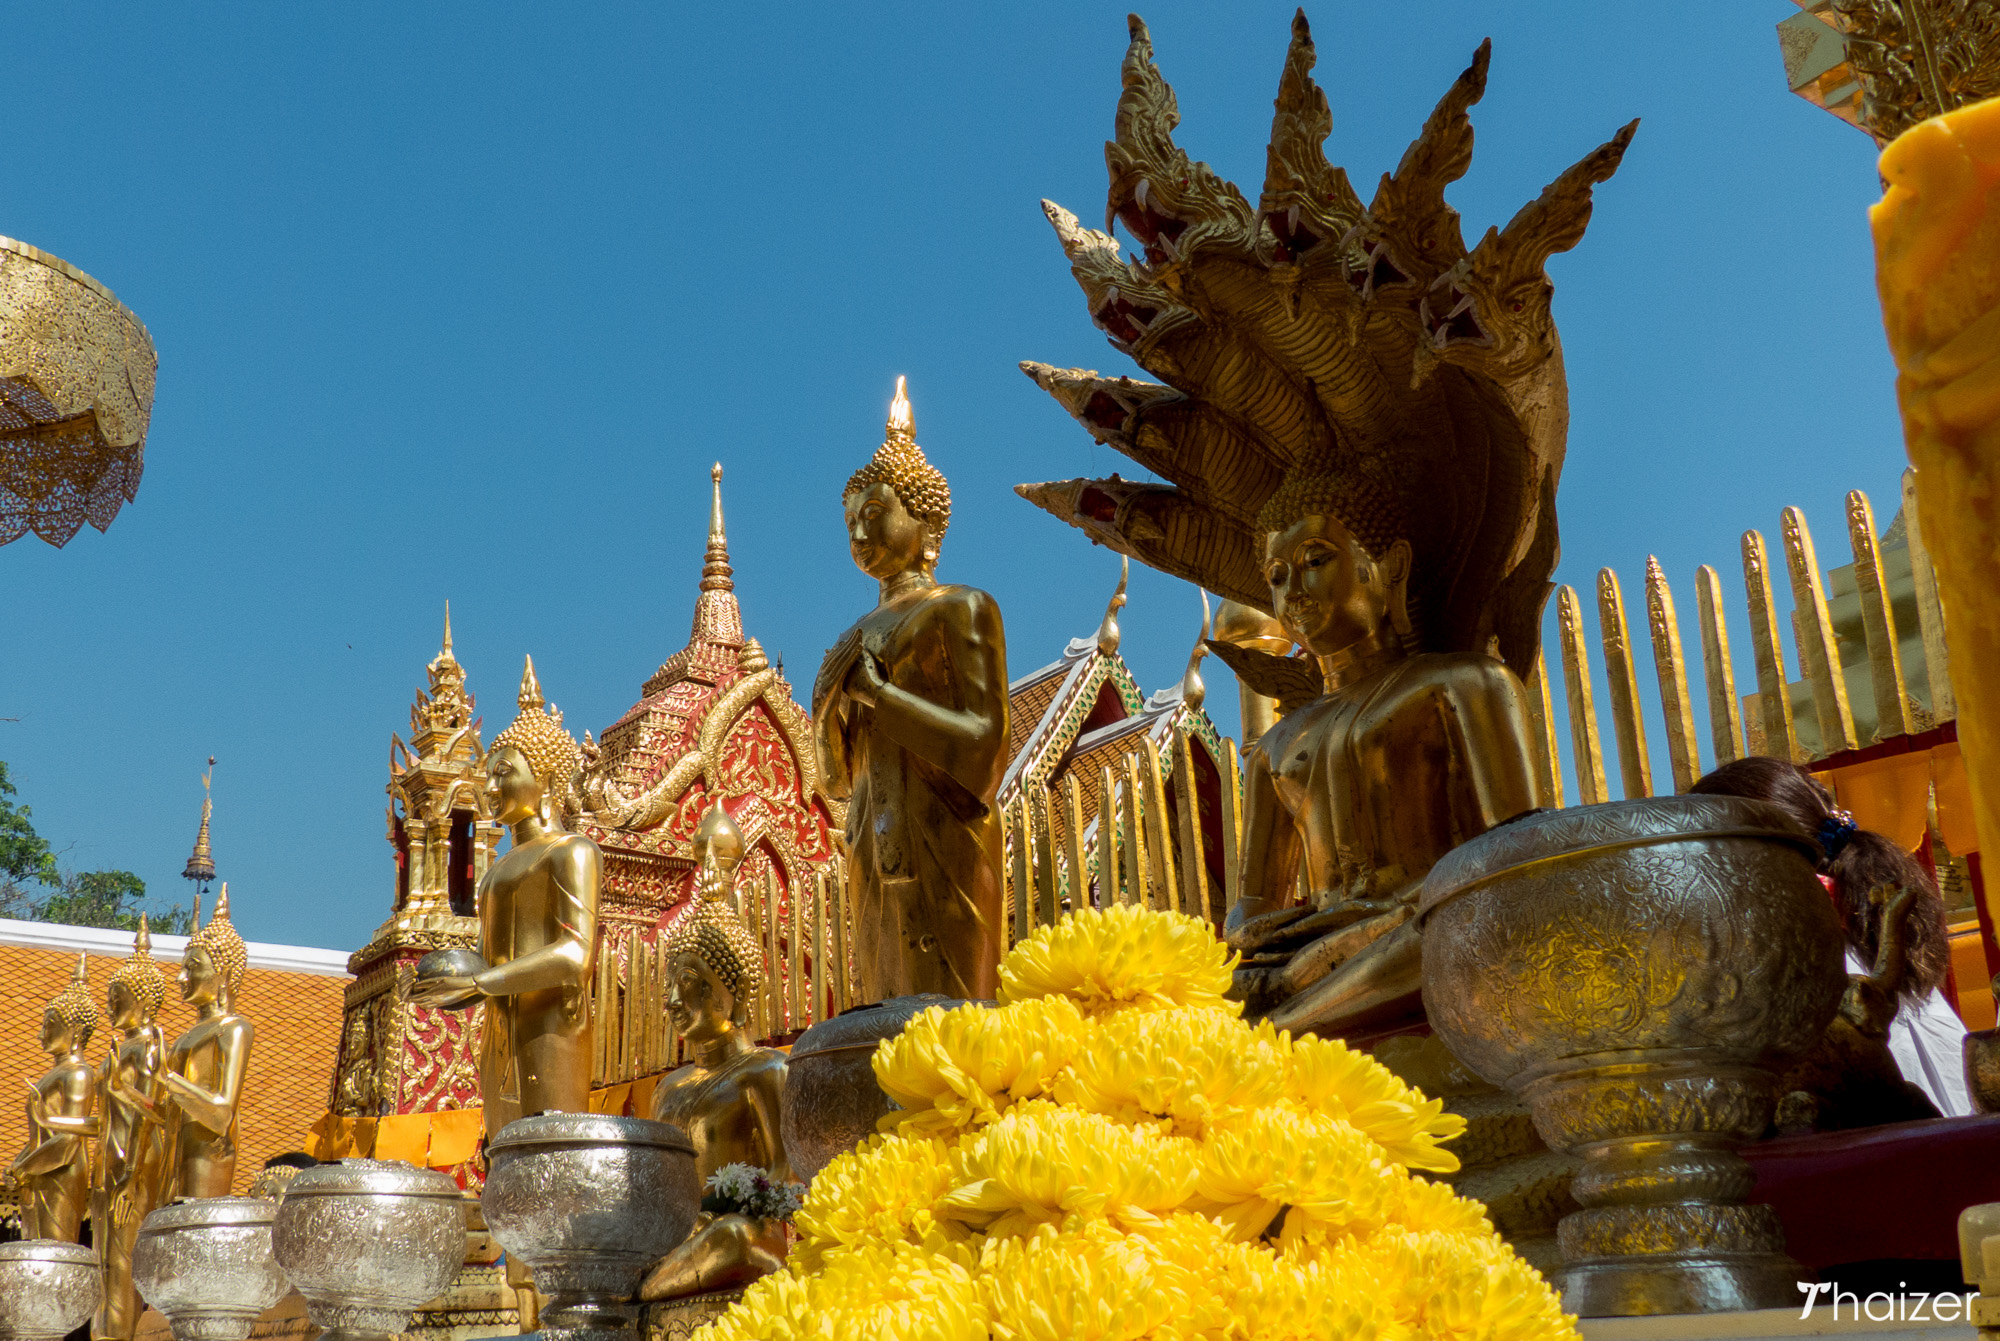 wat-phra-that-doi-suthep-chiang-mai-2 Wat Phra That Doi Suthep, Chiang Mai